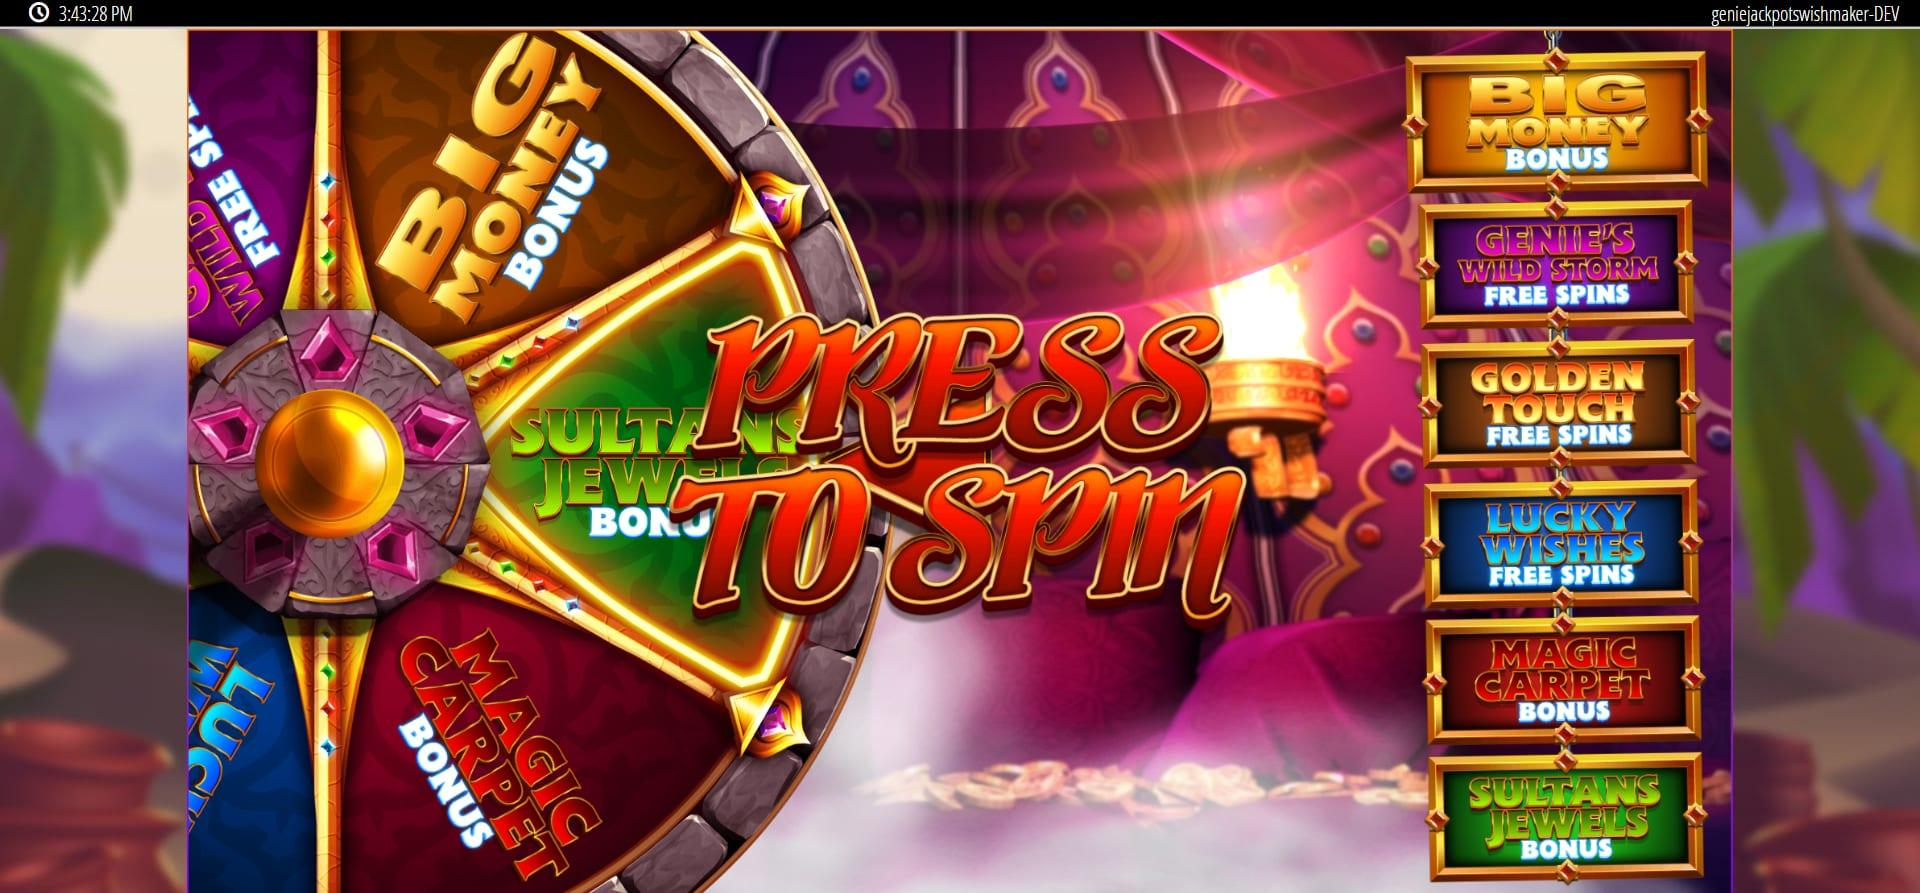 Bonus Features and Free Spins: We cannot say for sure what type of bonuses it will offer. Once this slot is released, our team at CasinoDaddy.com will update this page with all the information you might need.